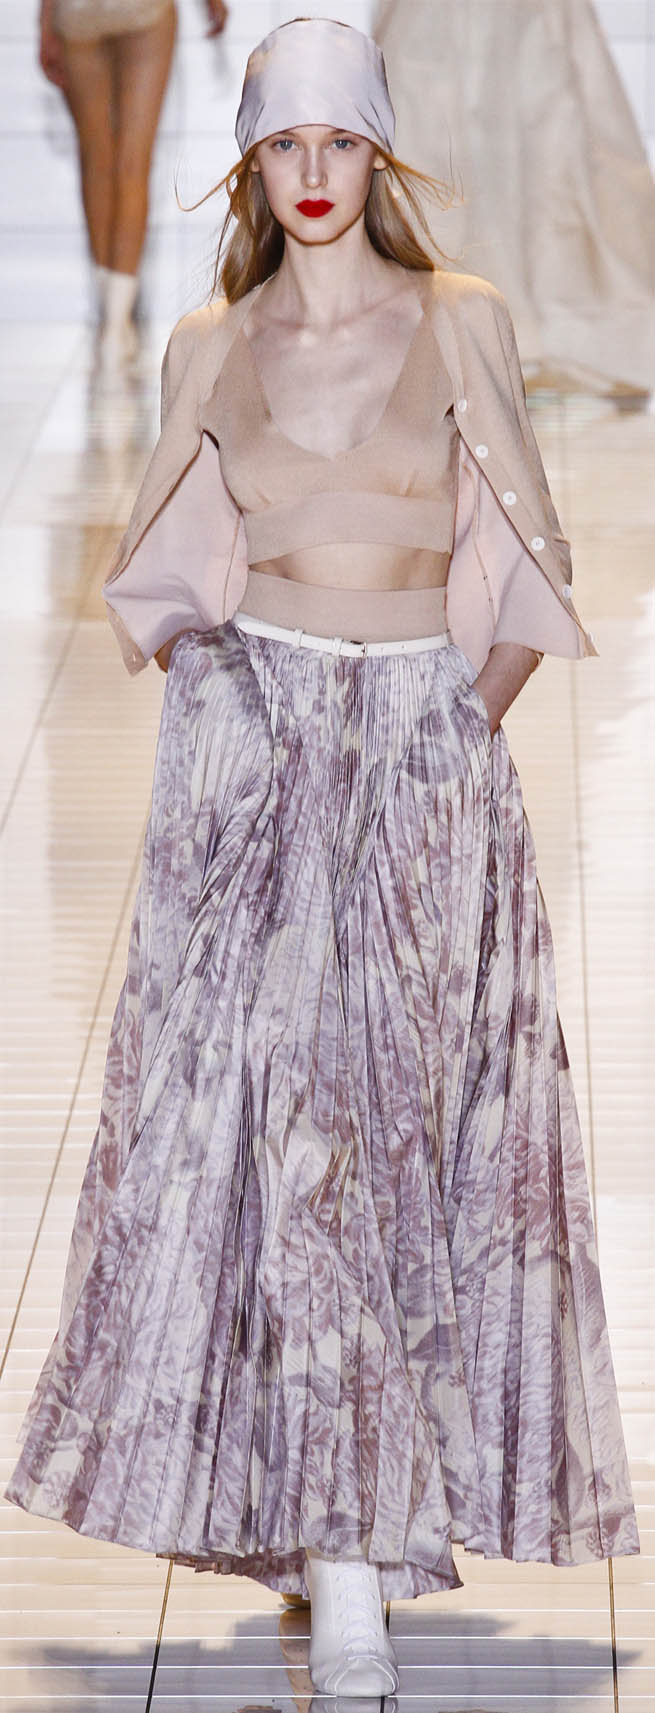 Rochas Spring Summer 2013 Ready To Wear collection